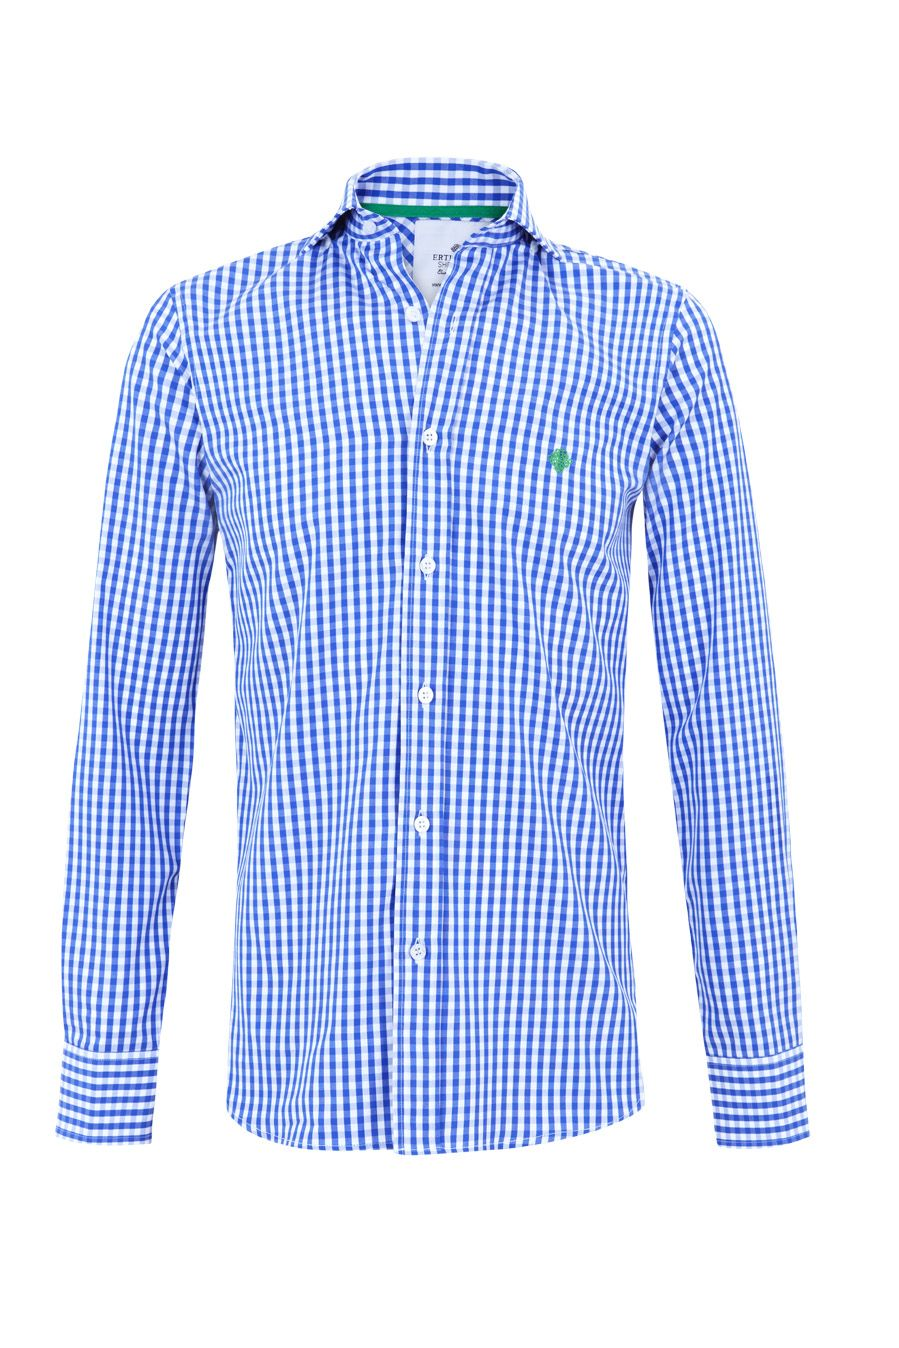 """Blue gingham """"Grant"""" shirt w/ logo embroidered in spring green. 100% cotton Available in Slim Fit & Classic Fit"""